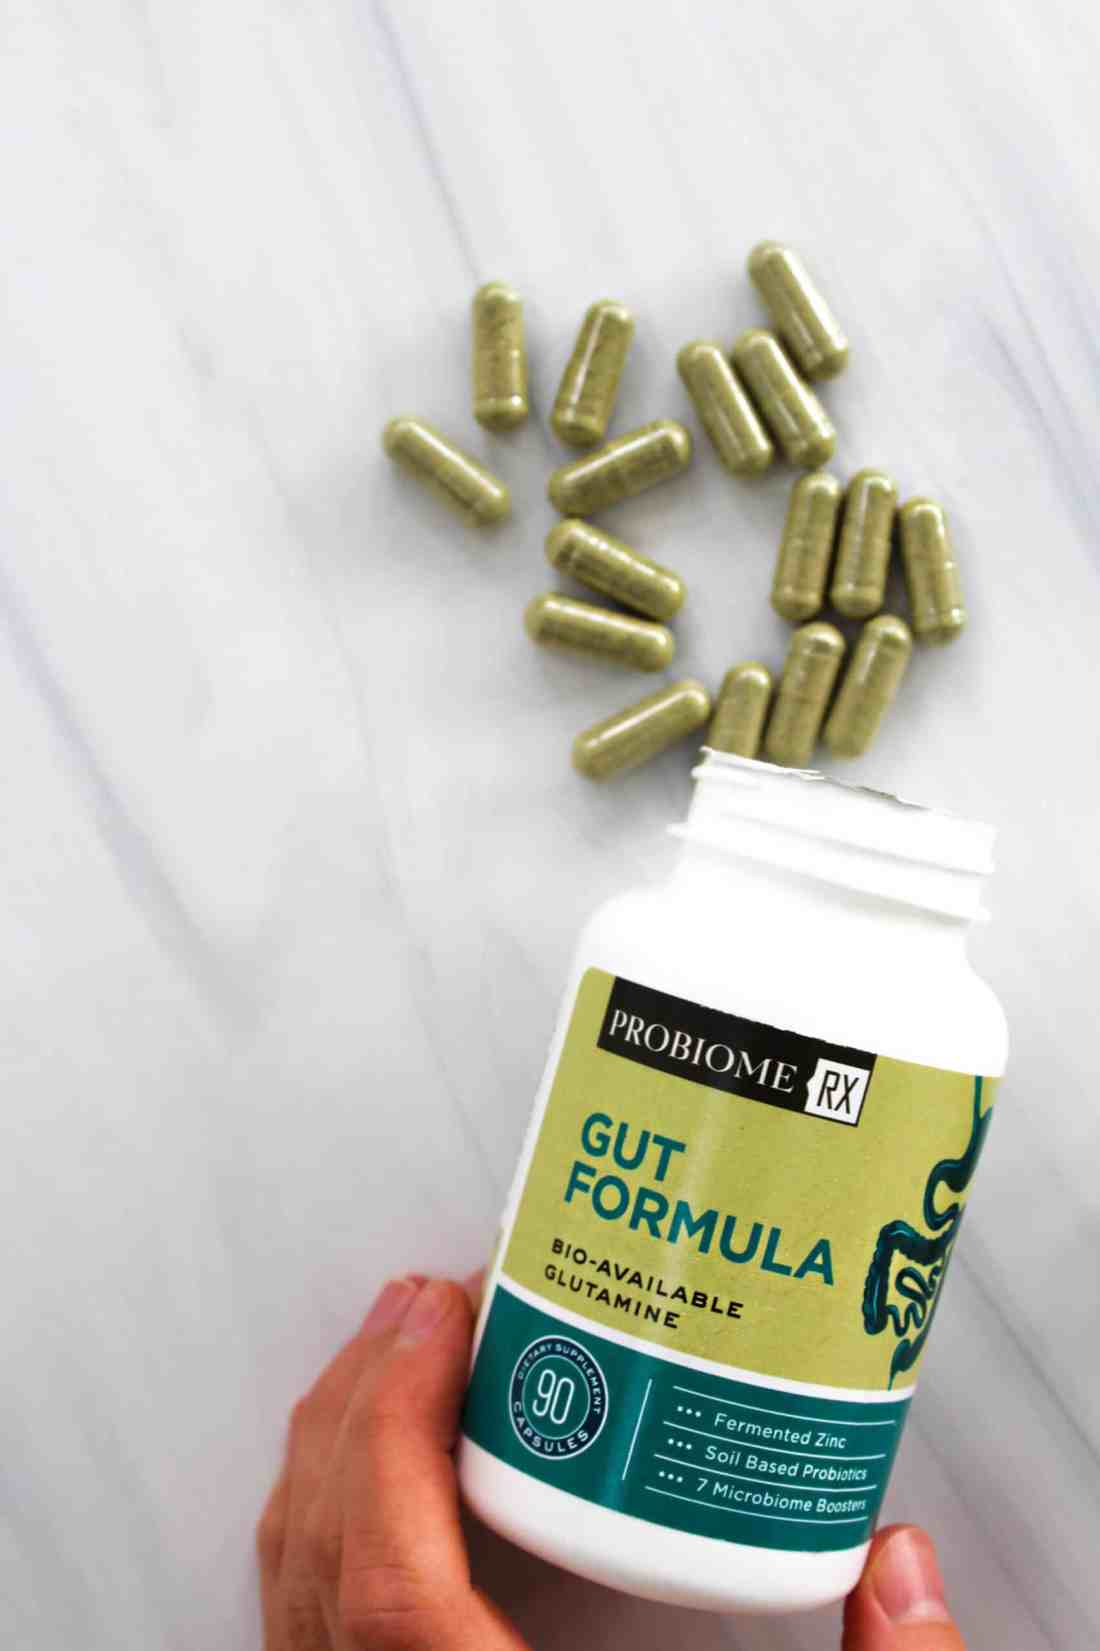 Sharing 3 Ancient Nutrition supplements, including a SBO probiotic, to help support a healthy digestive system, immune system, & overall gut function!